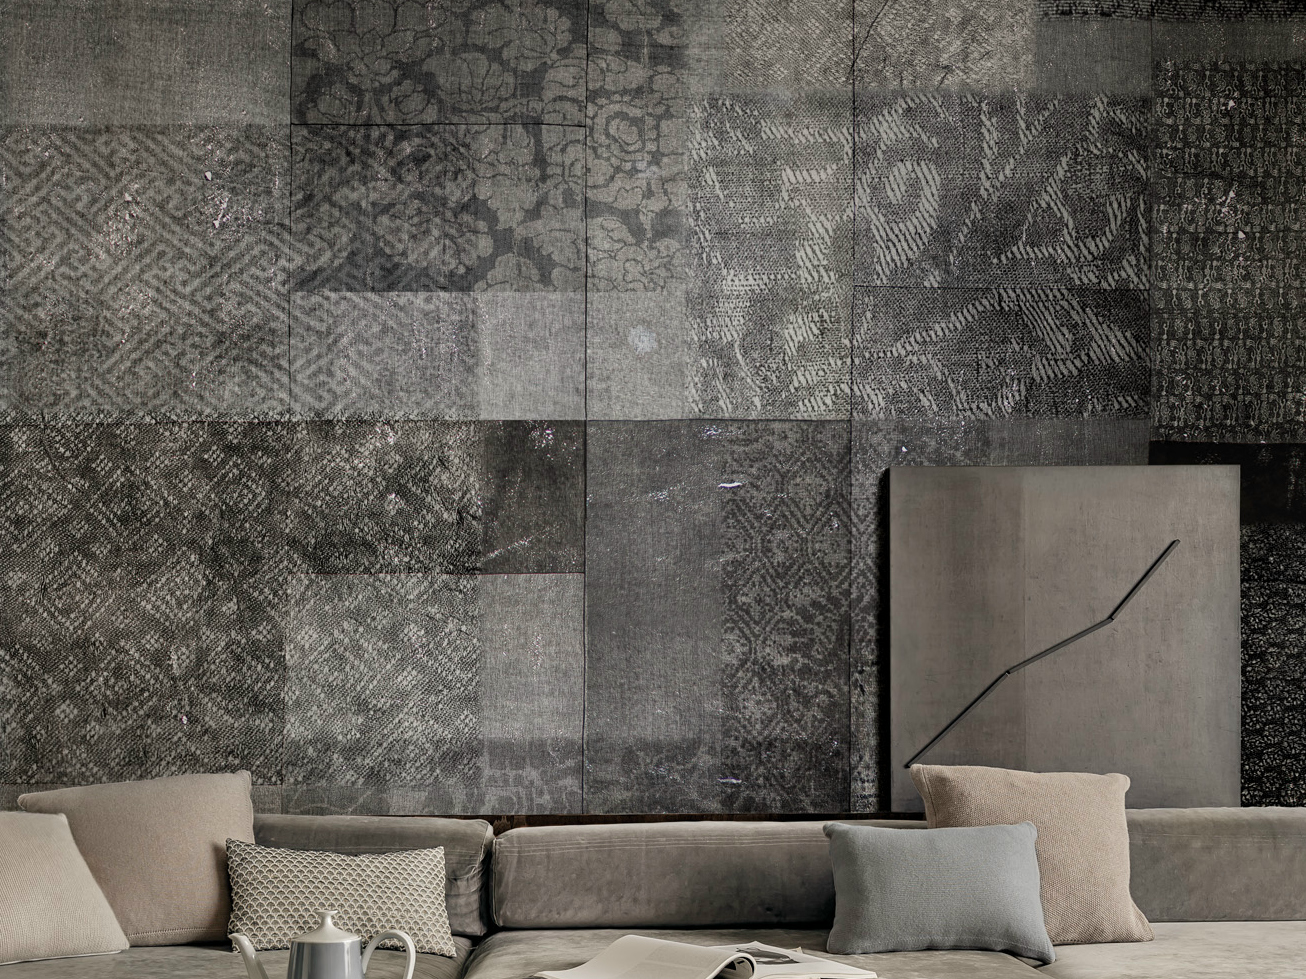 motif wallpaper ensemble by wall dec design lorenzo de grandis. Black Bedroom Furniture Sets. Home Design Ideas